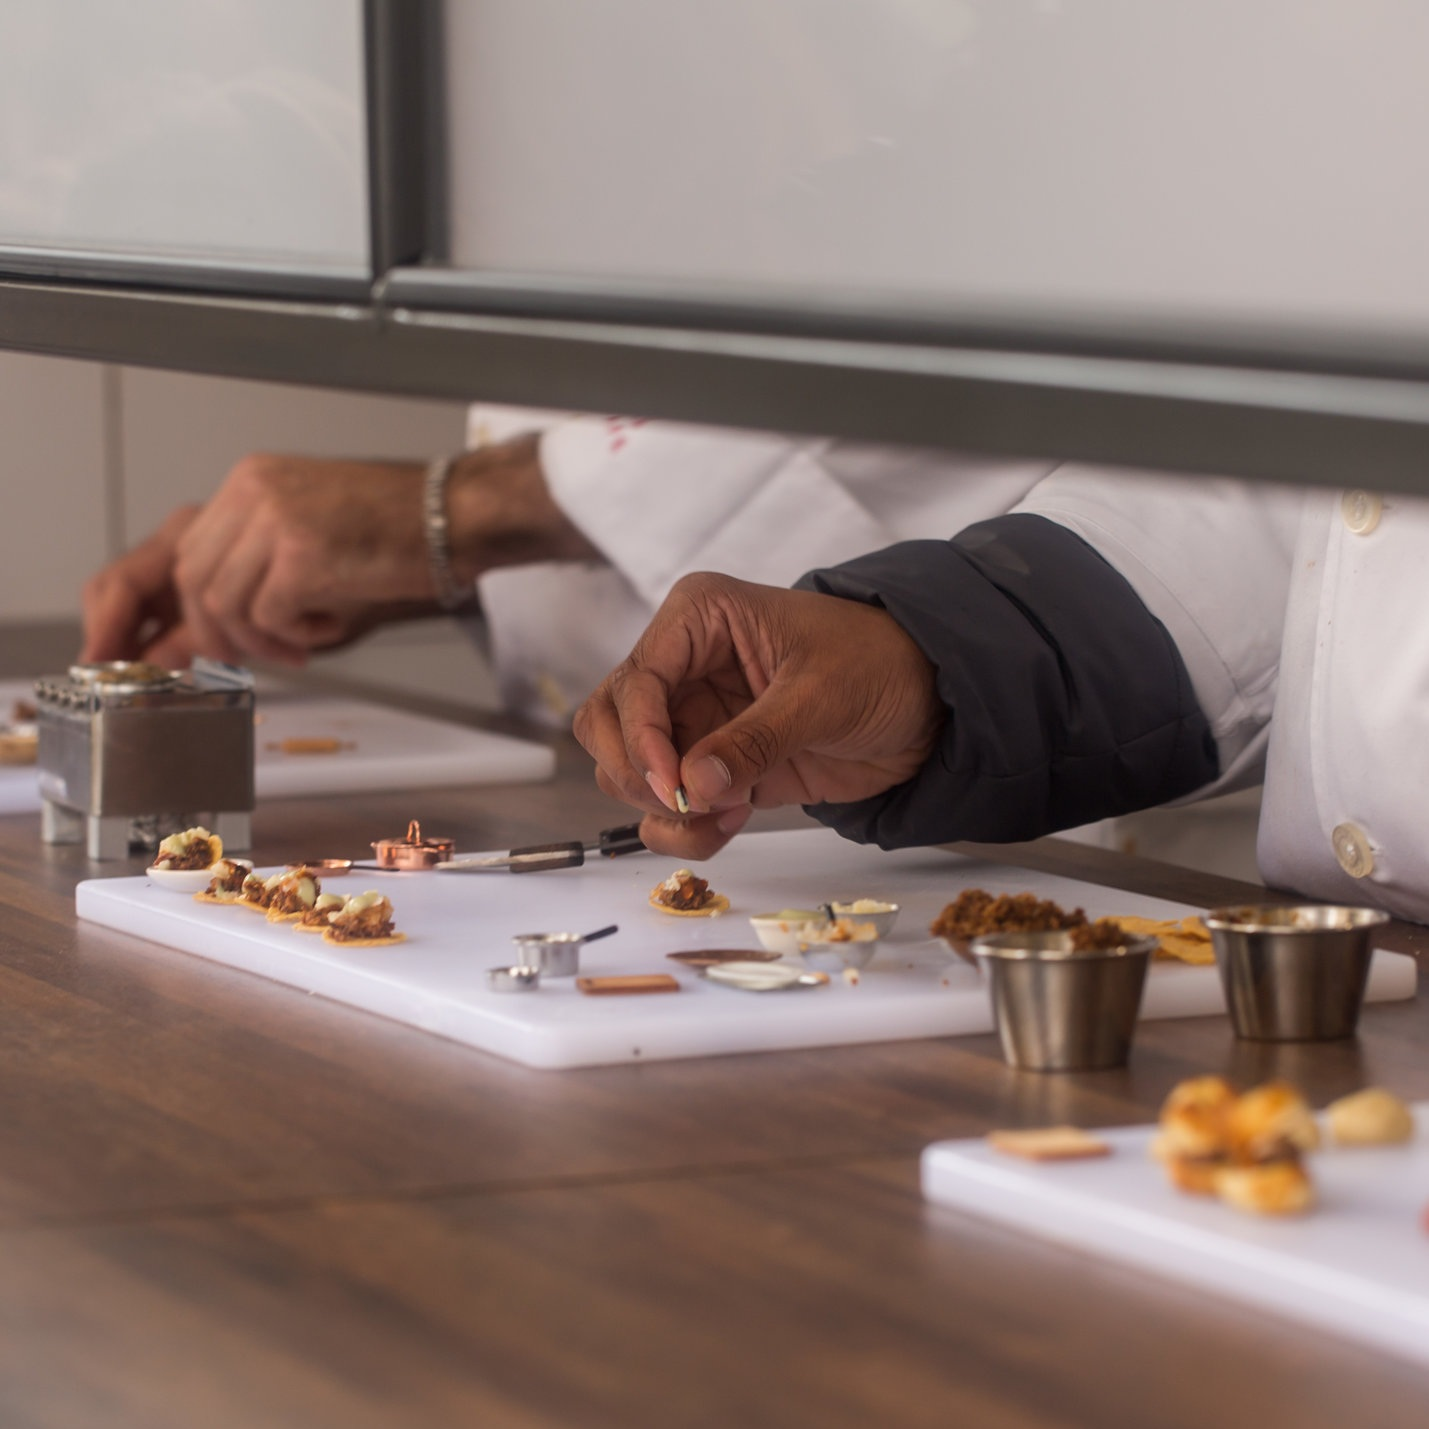 ZAGAT TINY CAFE - A tiny cafe serves miniature versions of some of NYC's best dishes.